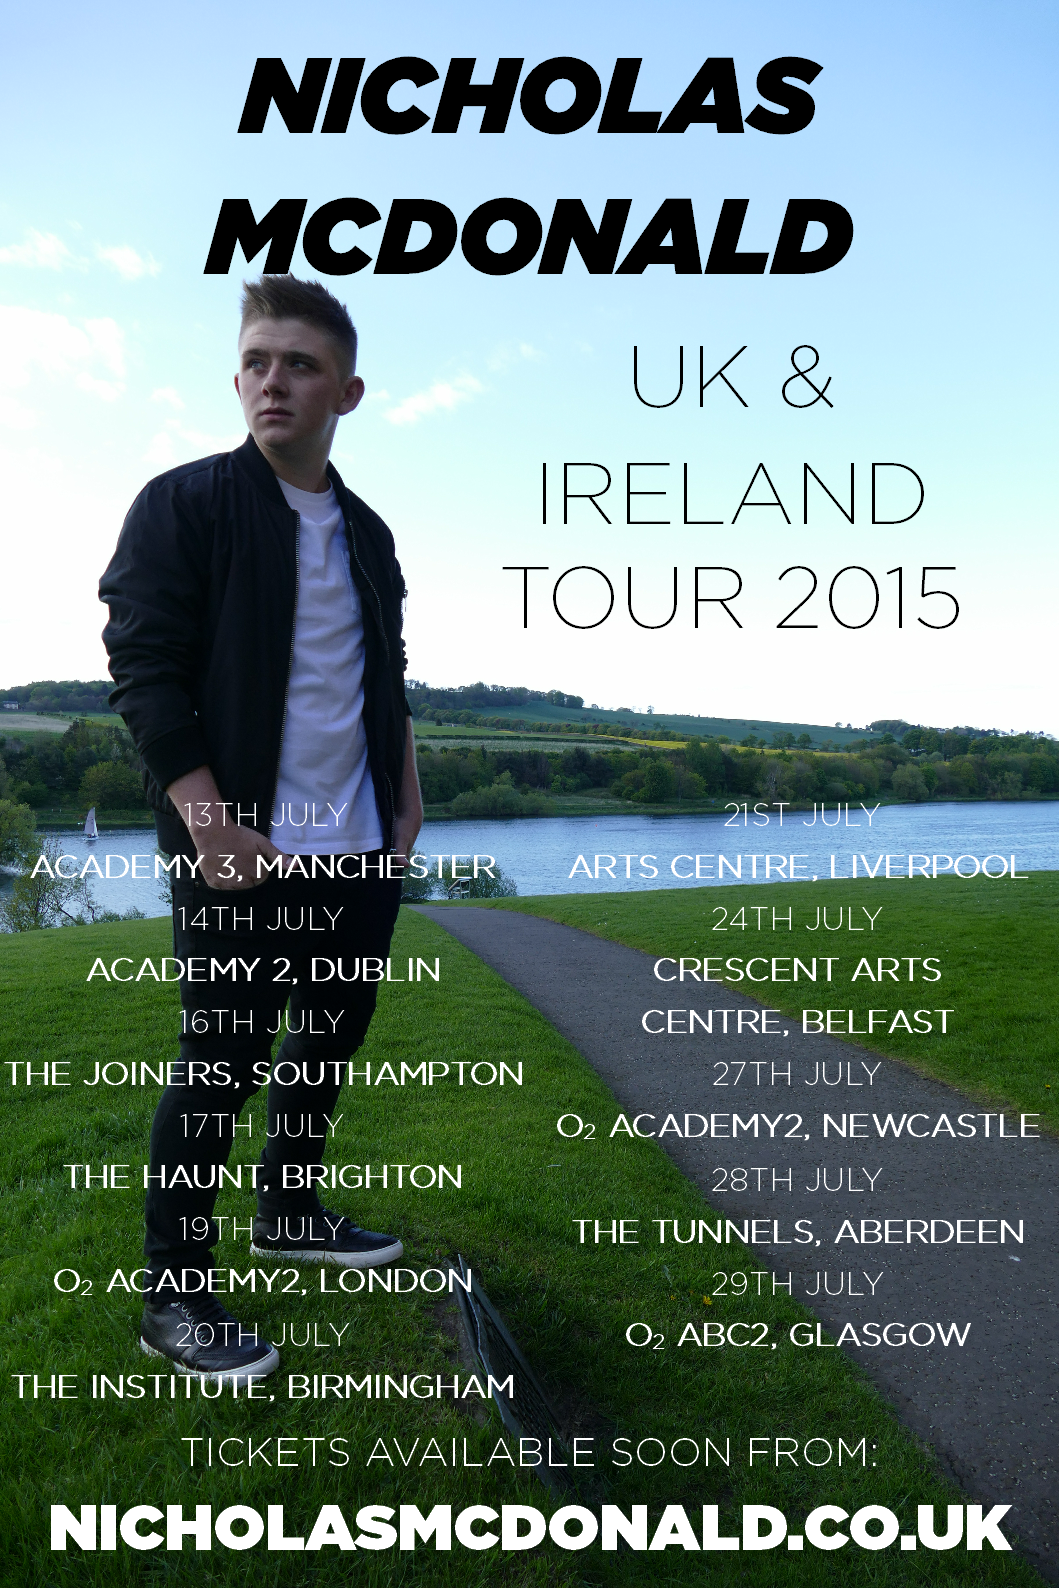 RT RT So happy to announce my UK & Ireland Tour this July!! Tickets will be available REALLY soon!! #NickyOnTour http://t.co/zvmETNbrBn